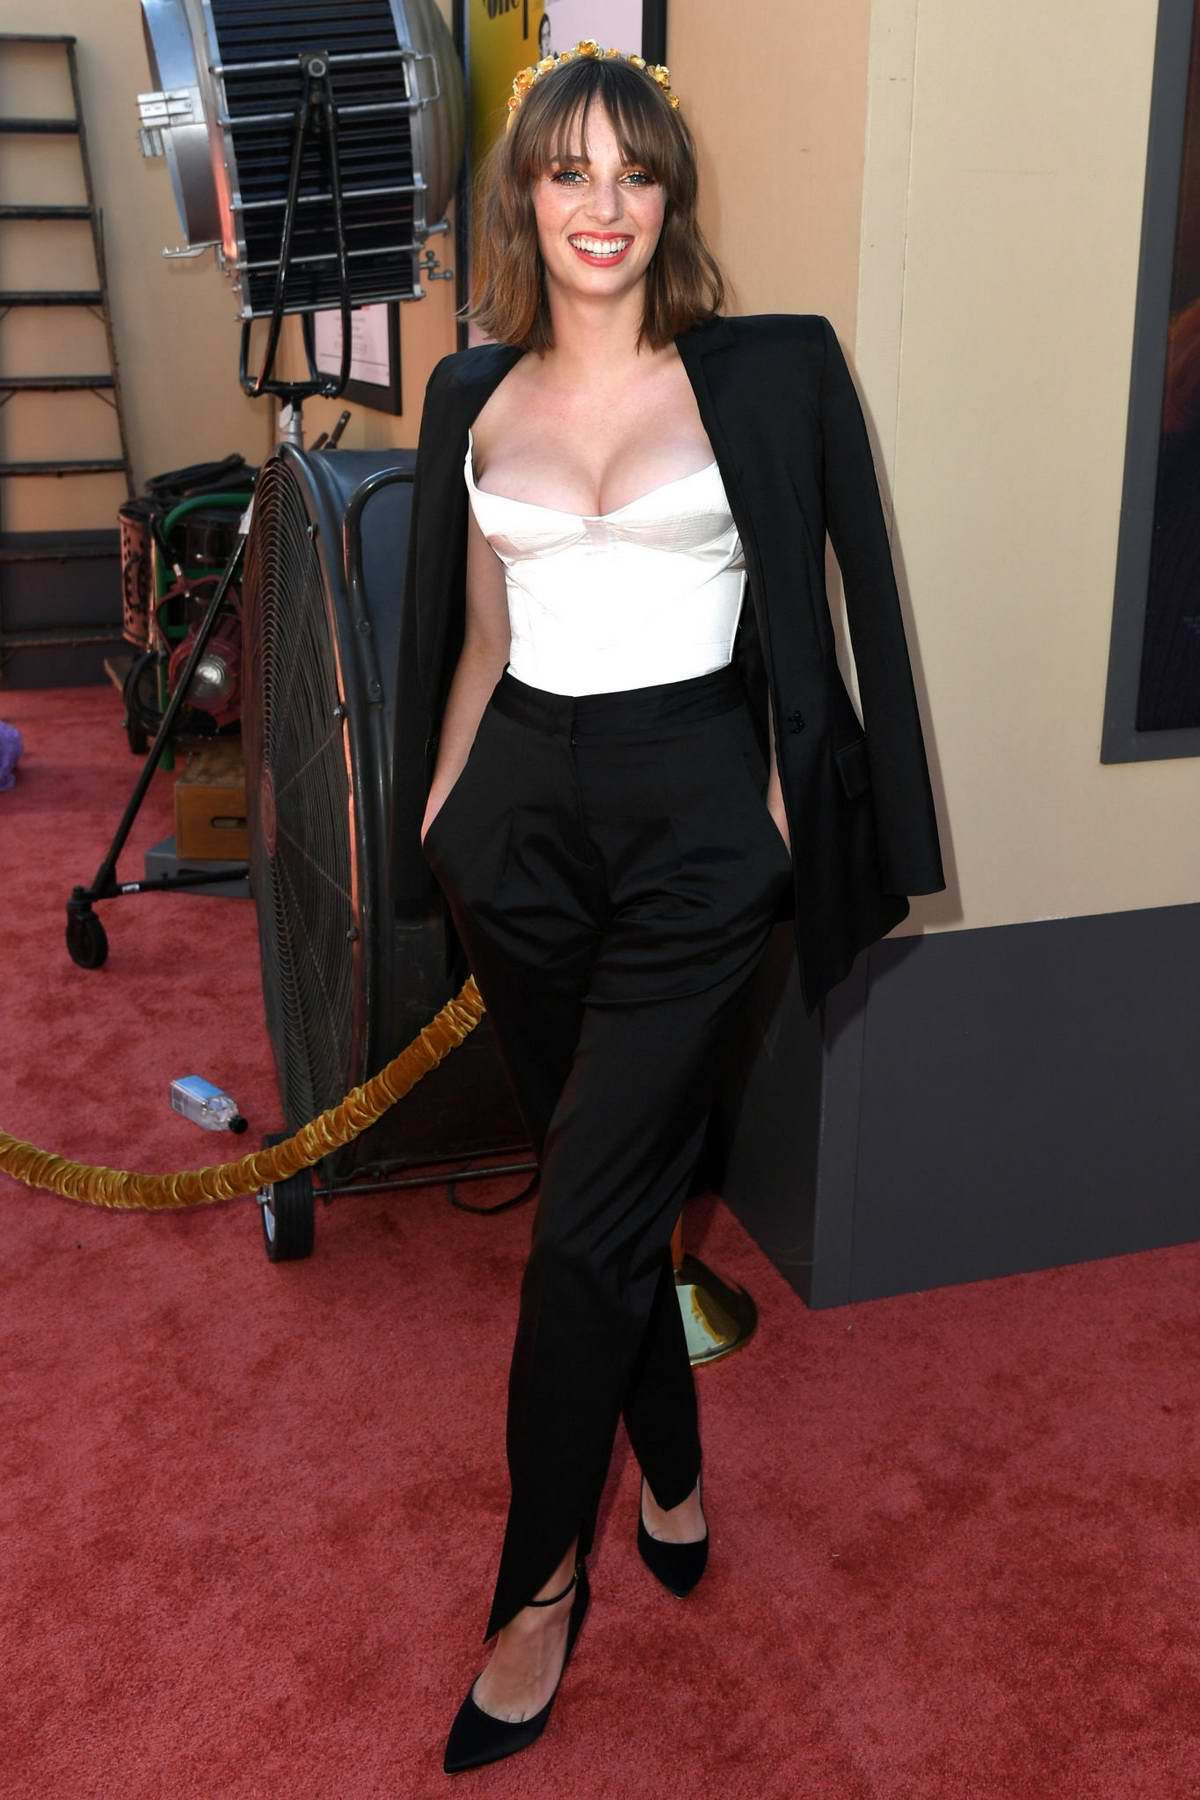 Maya Hawke attends the Los Angeles Premiere of 'Once Upon a Time in Hollywood' in Hollywood, California